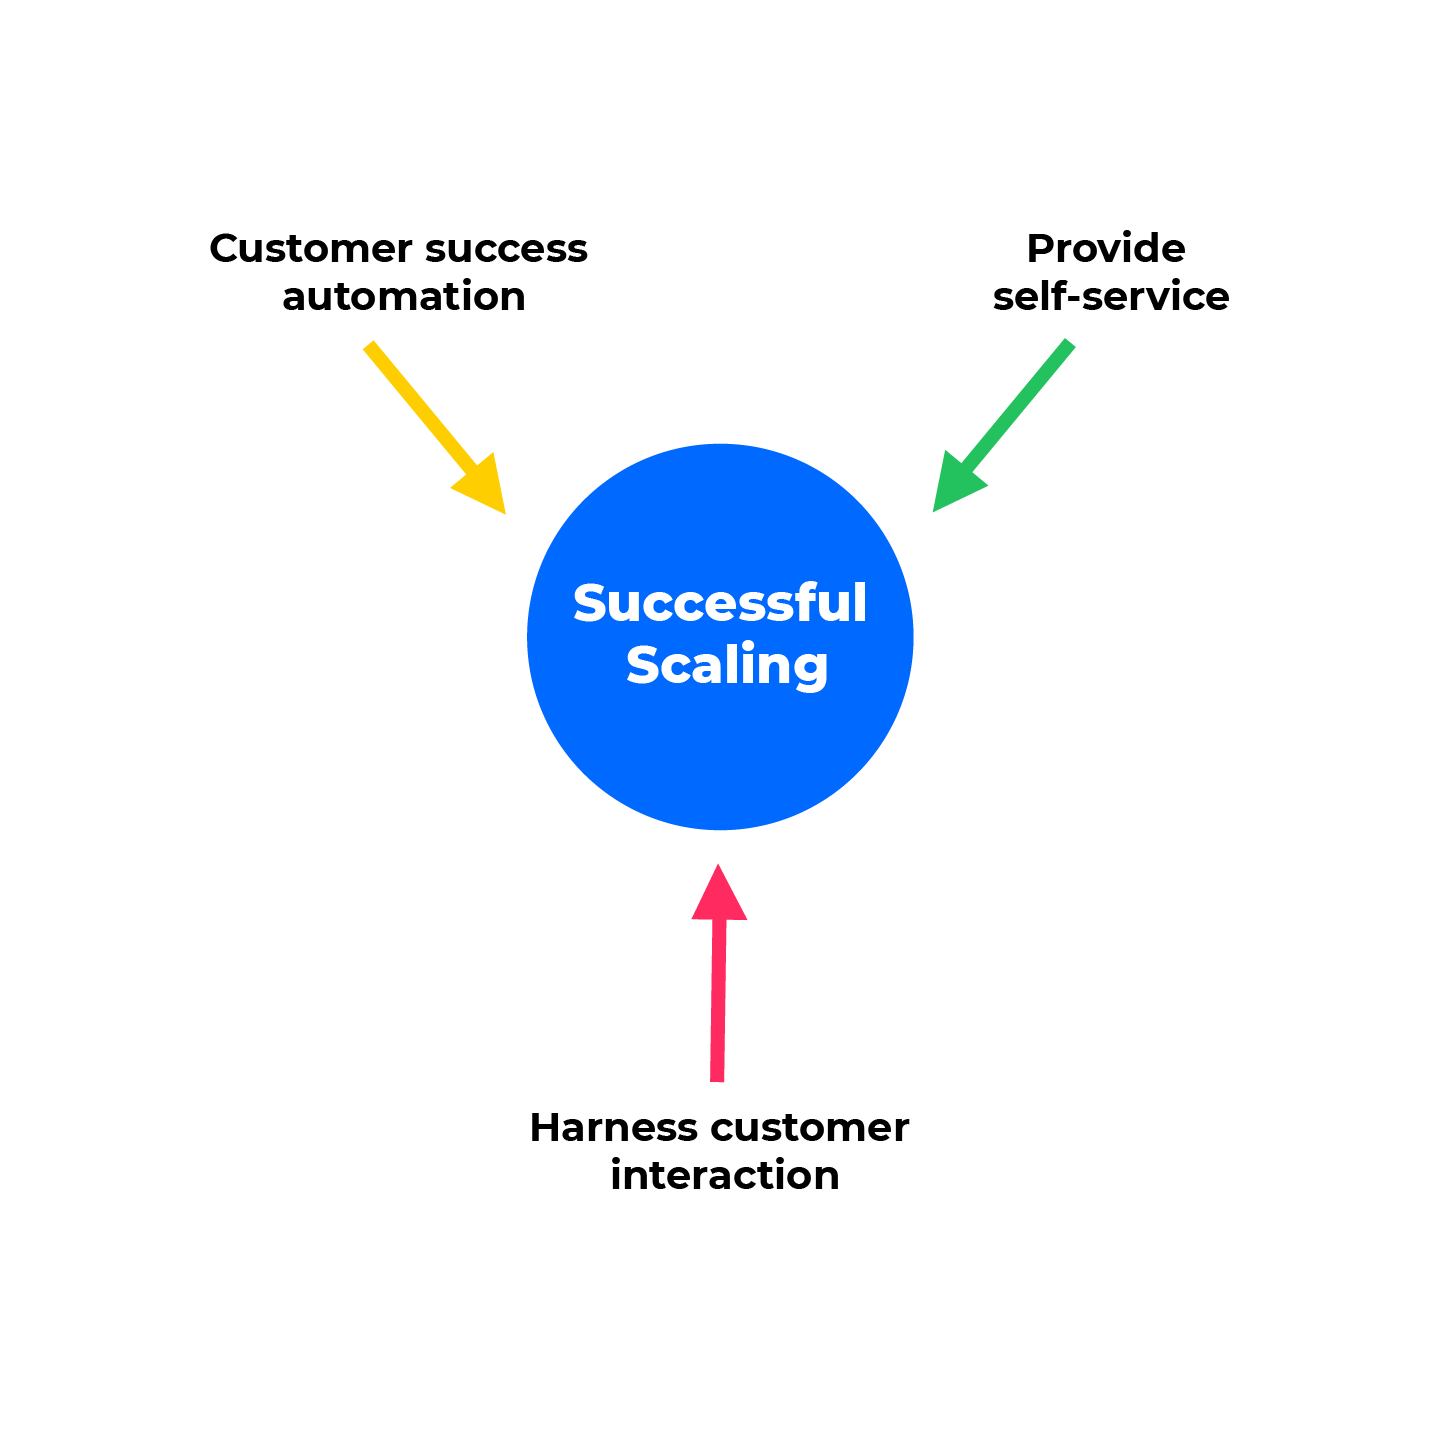 Key to successful scaling